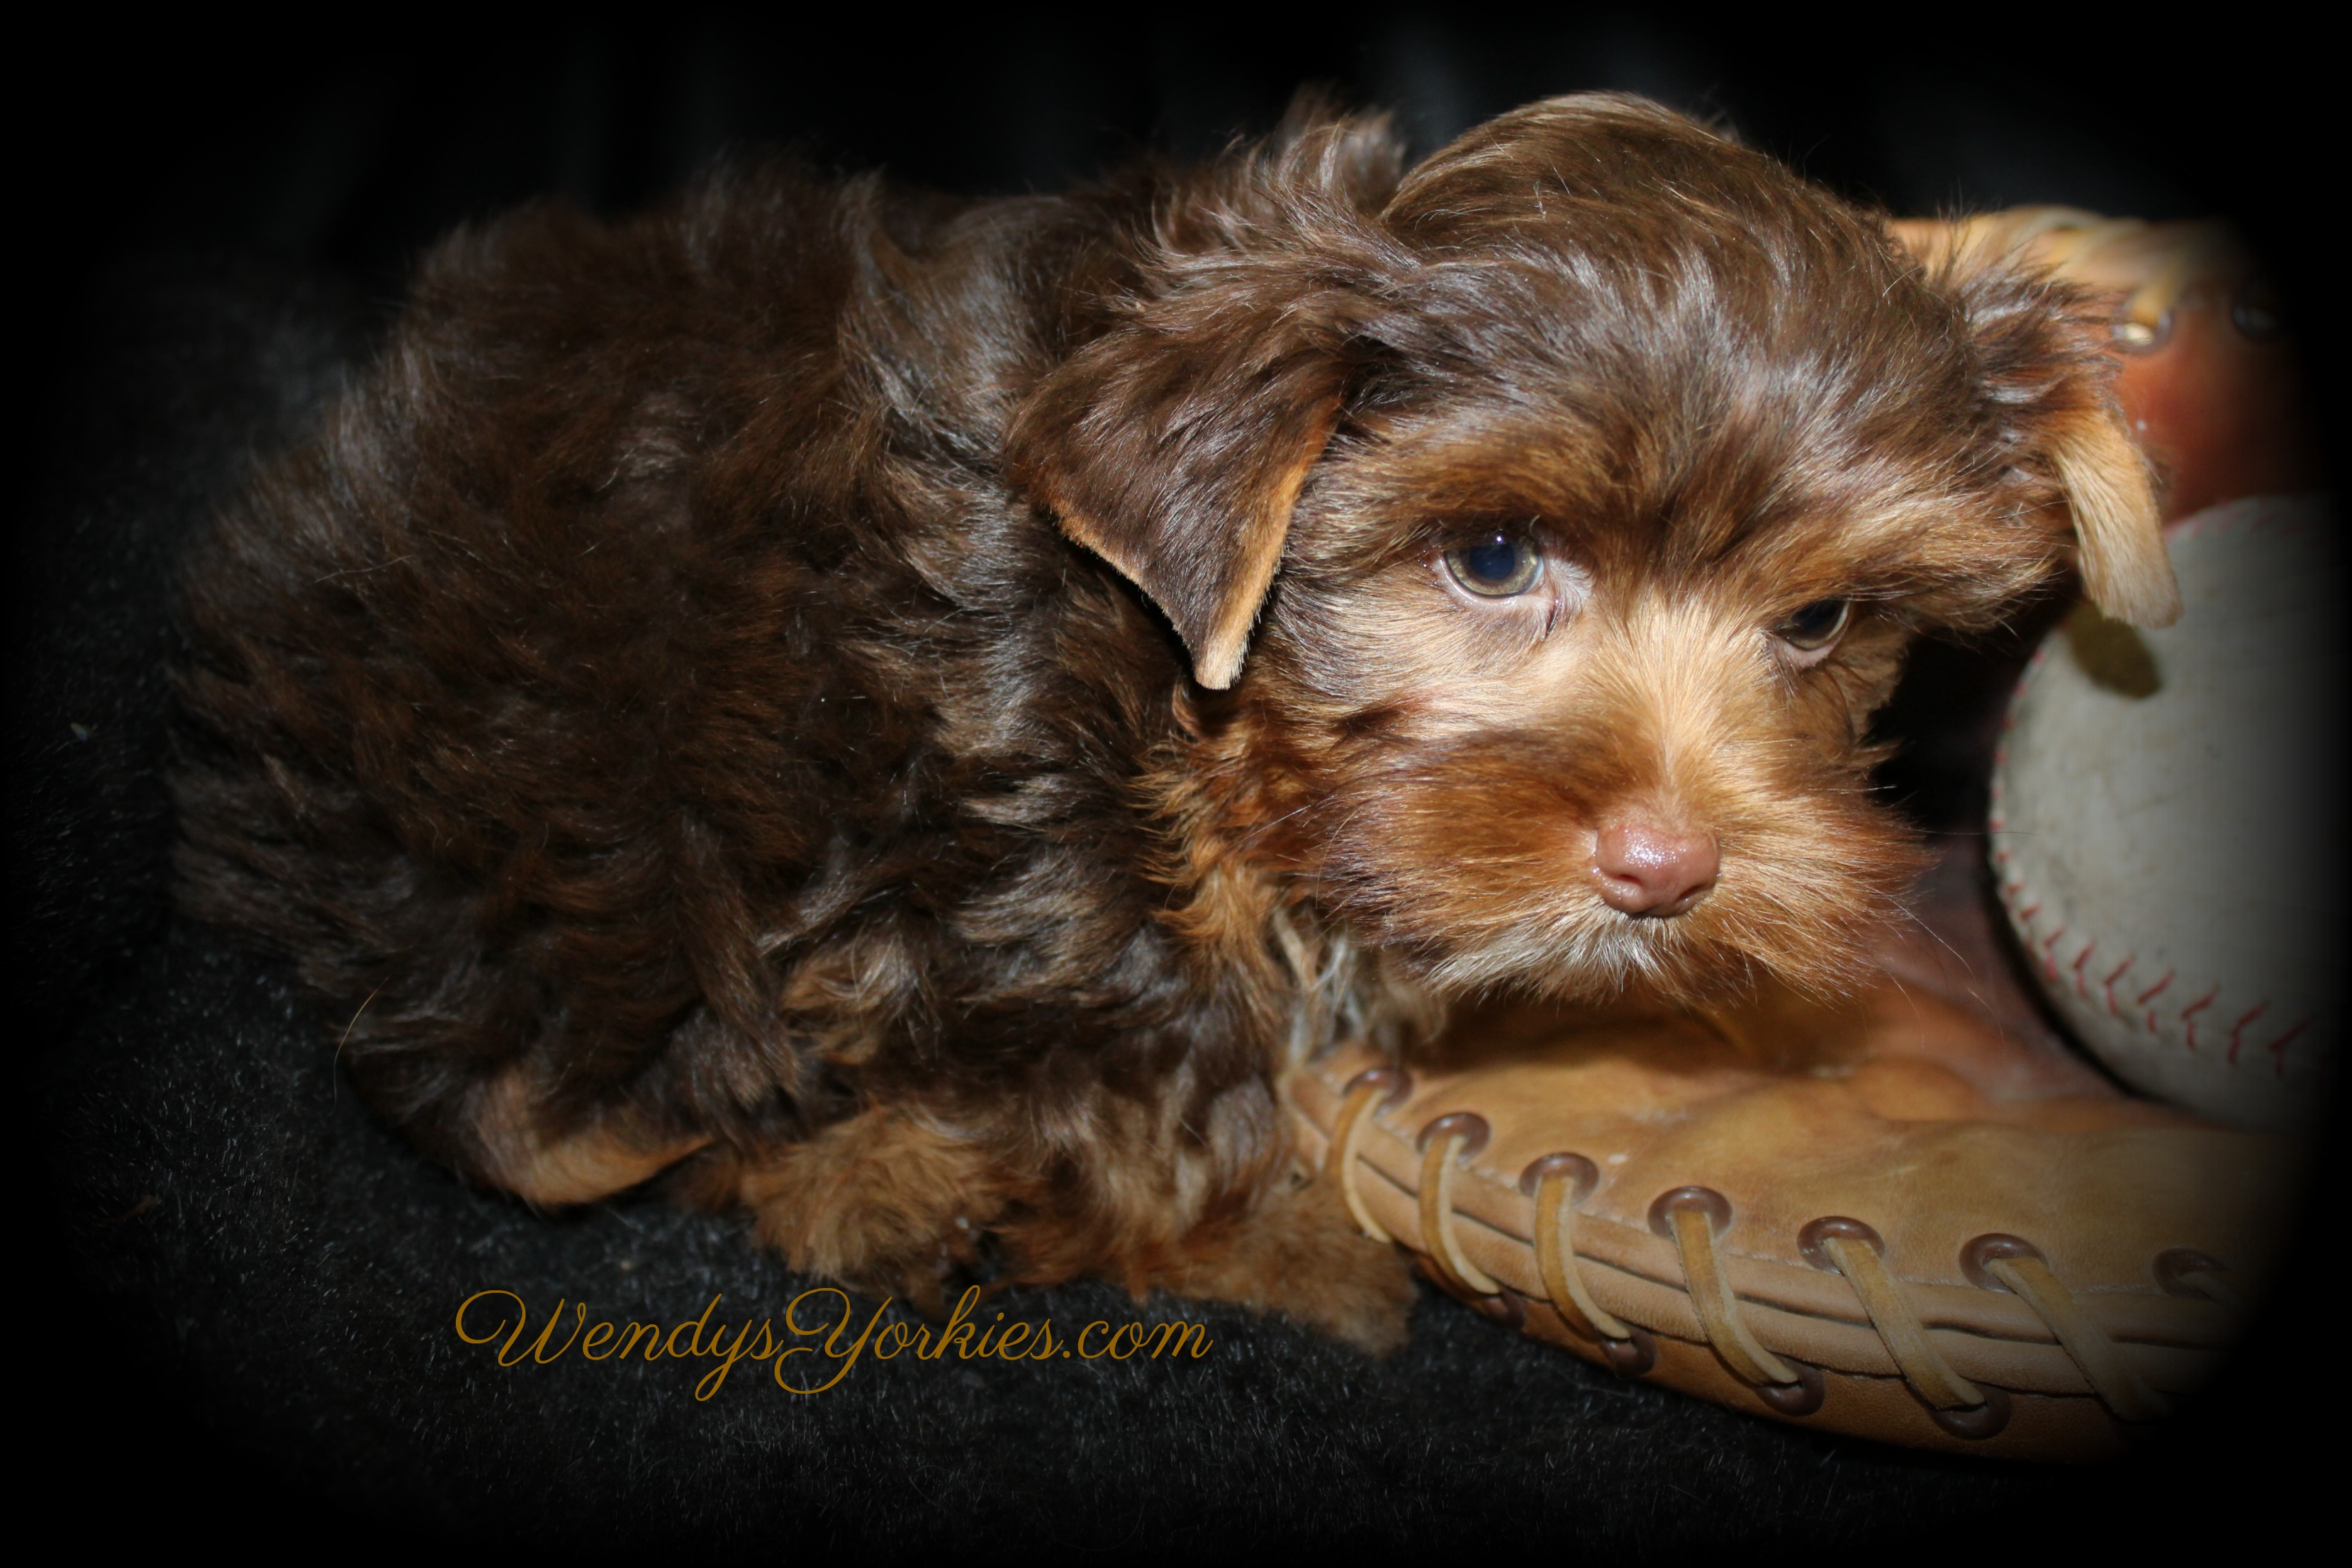 Chocolate Yorkie puppies for sale in Texas, Dixie cm1, WendysYorkies.com